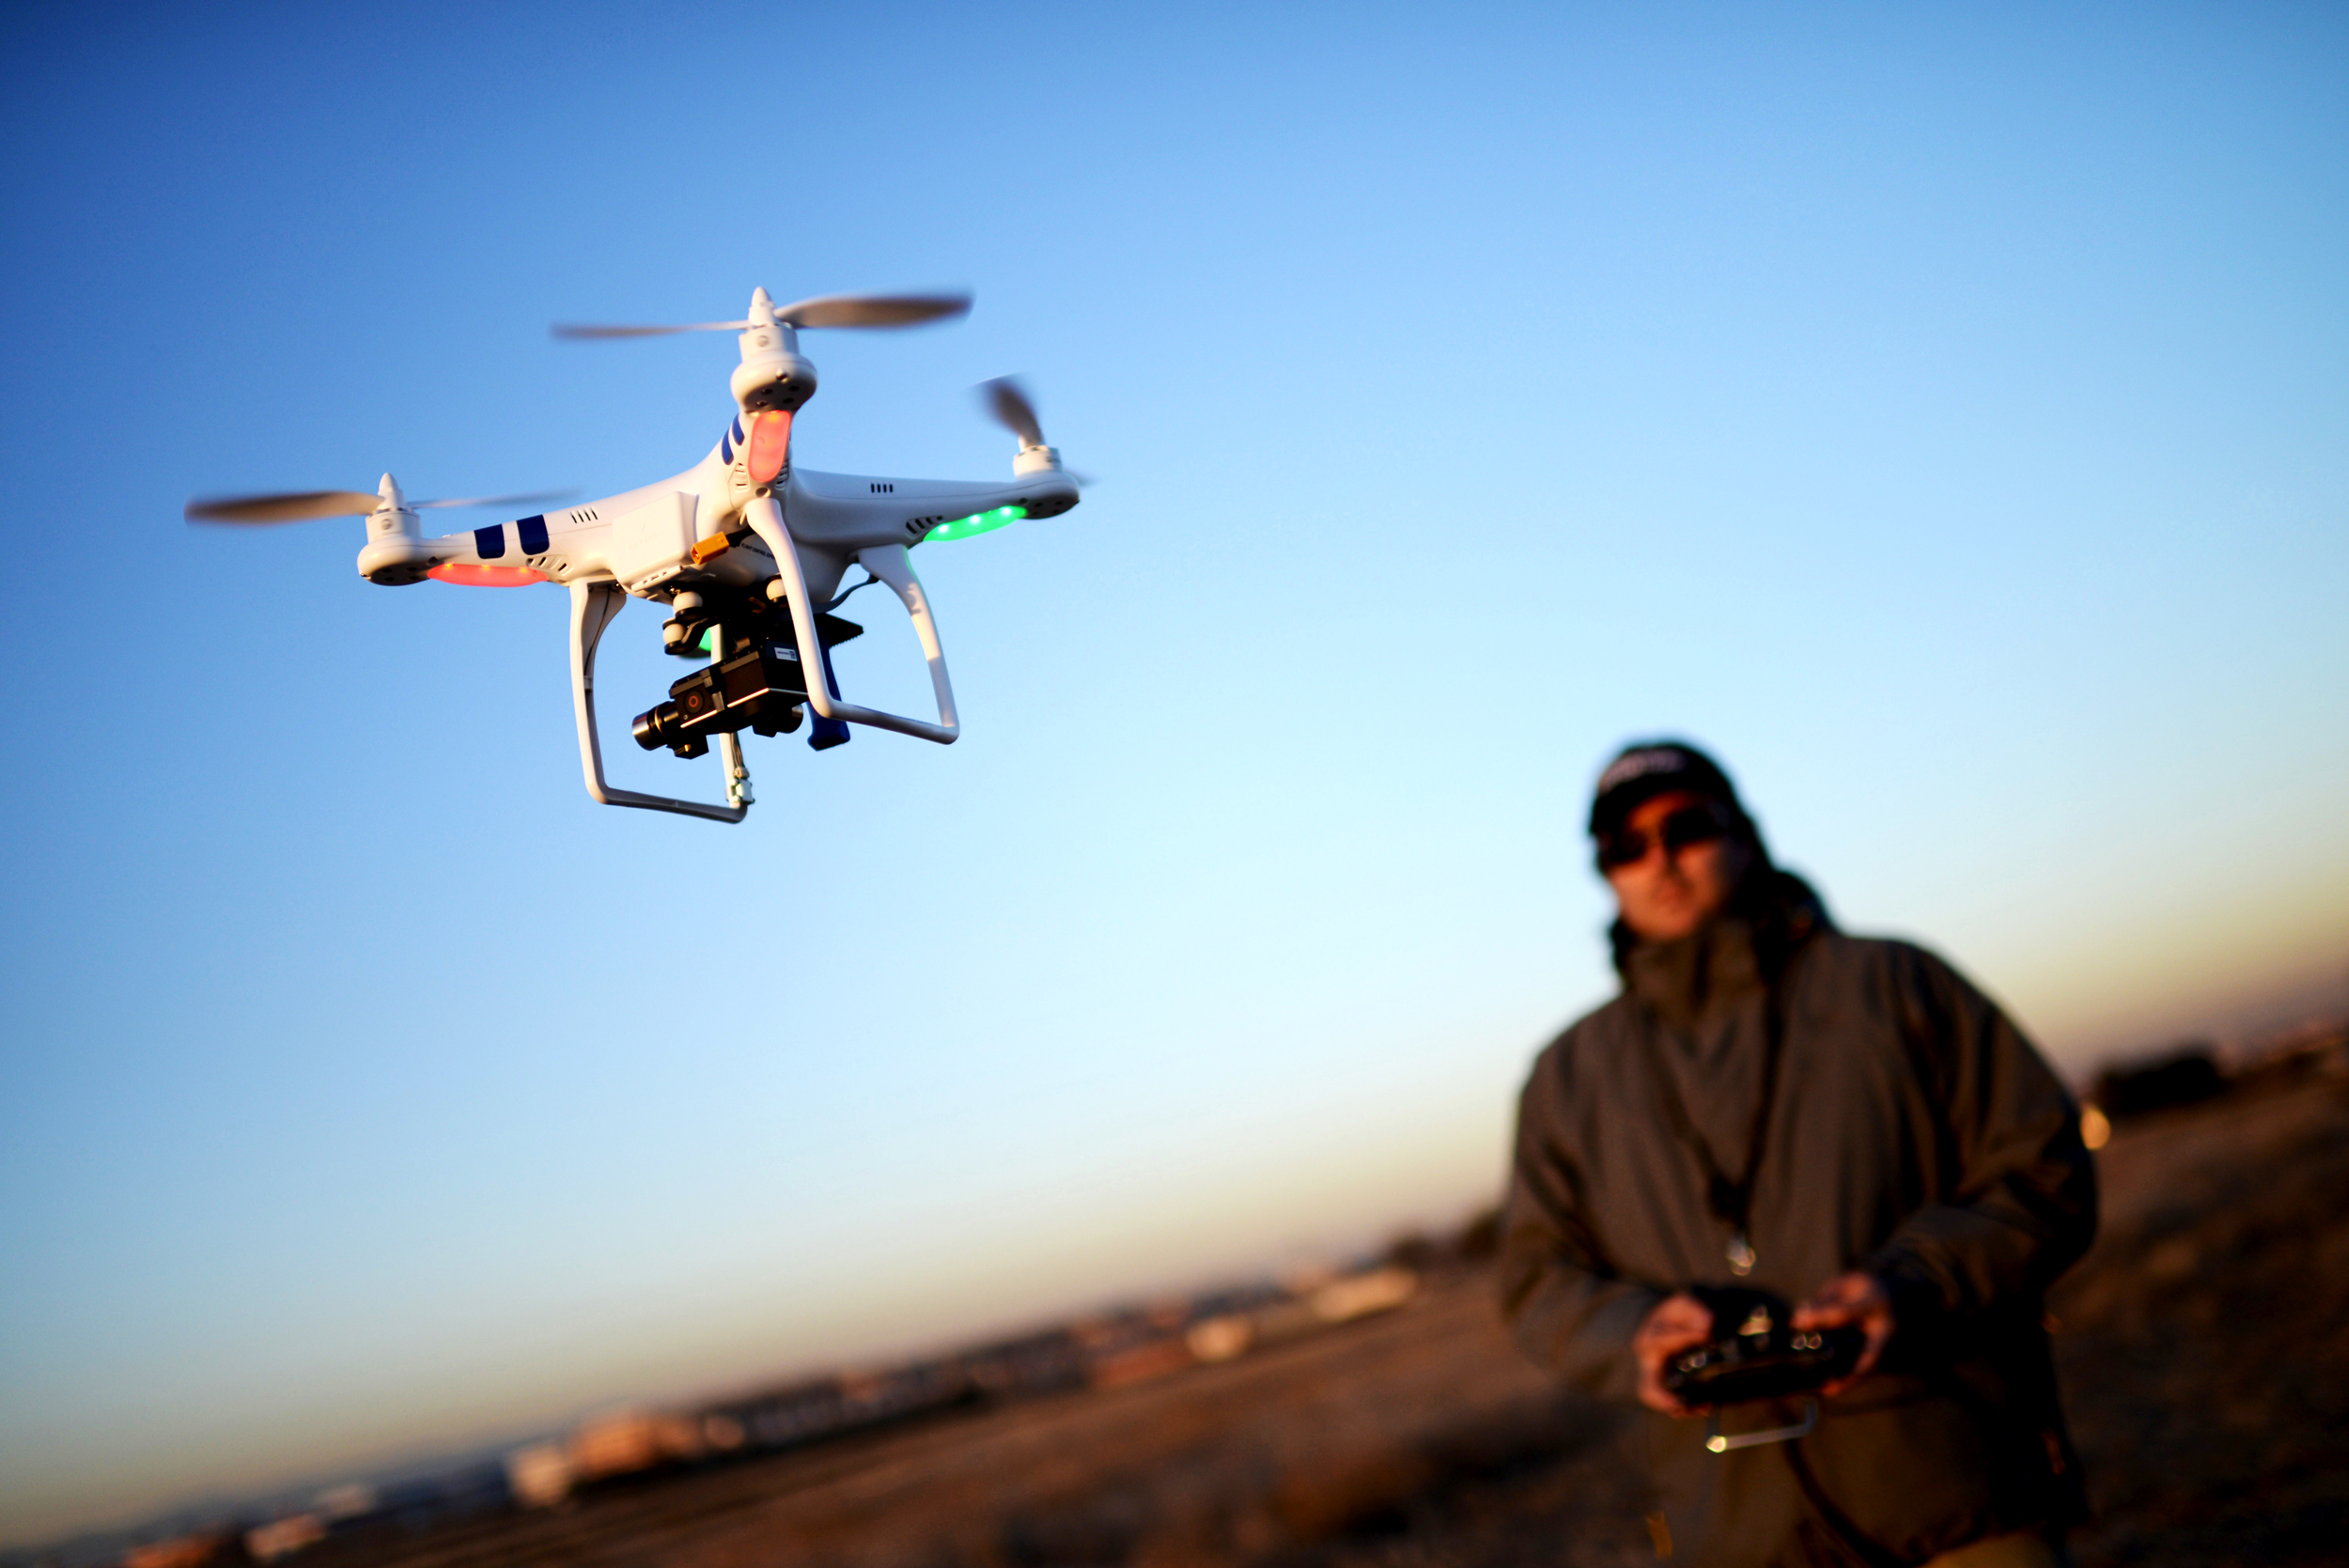 Man flying a Drone // Source: wired.com